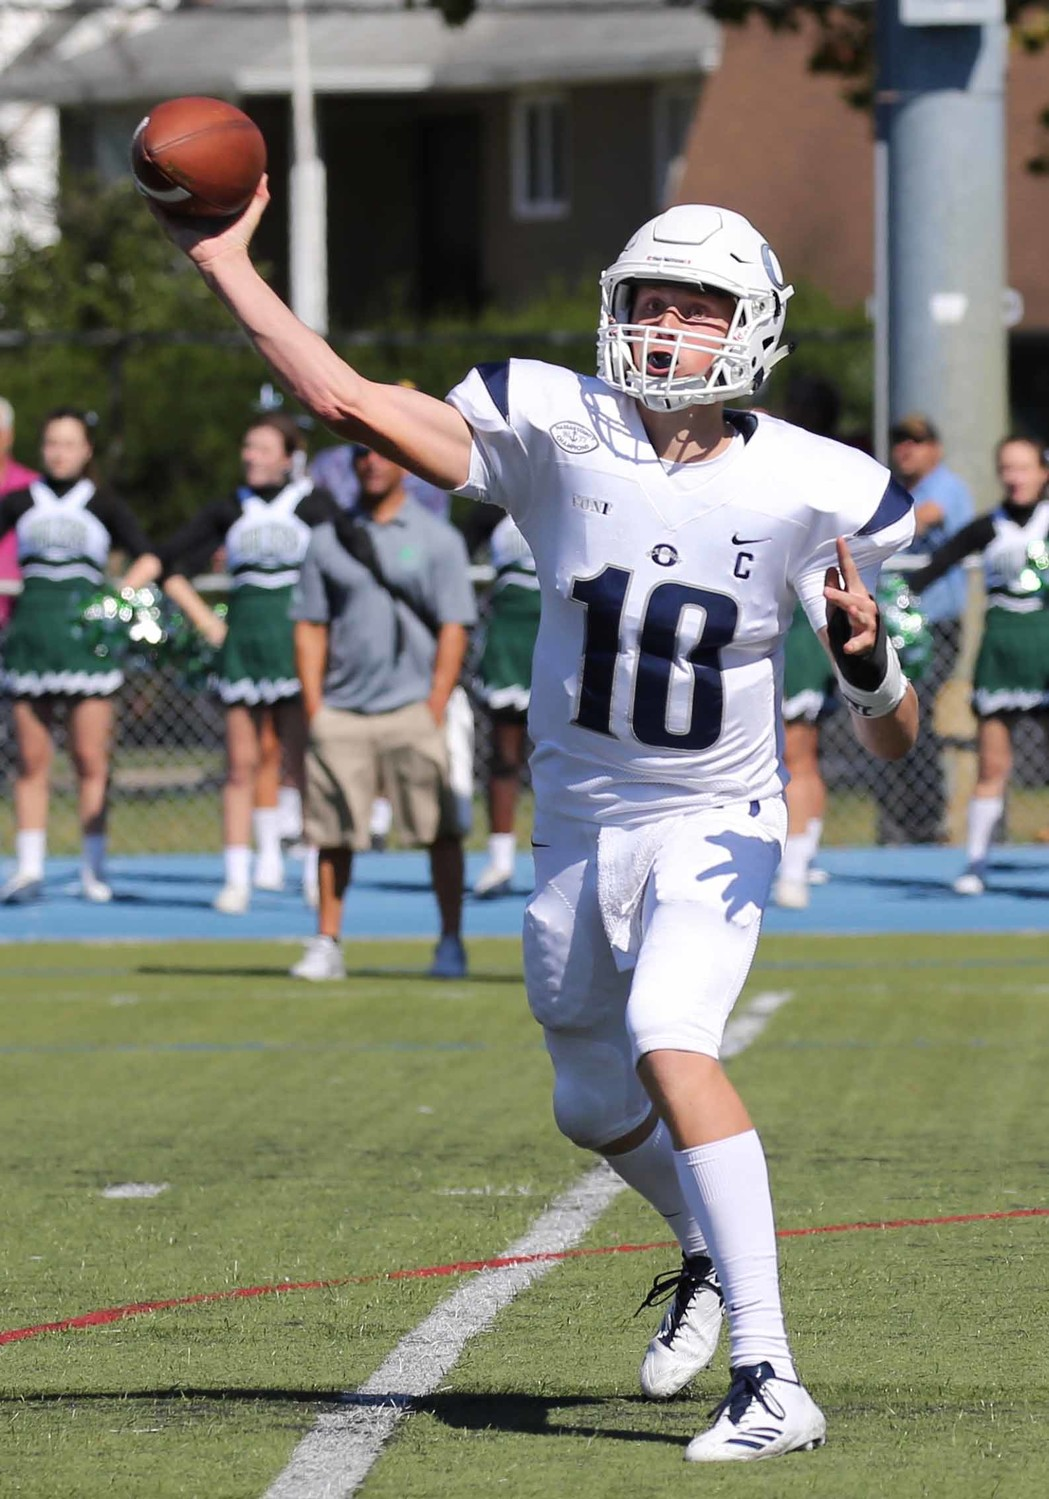 Senior quarterback Tommy Heuer threw for 365 yards and five touchdowns last Saturday as Oceanside defeated Farmingdale, 34-24, to extend its winning streak to start the season to three games.